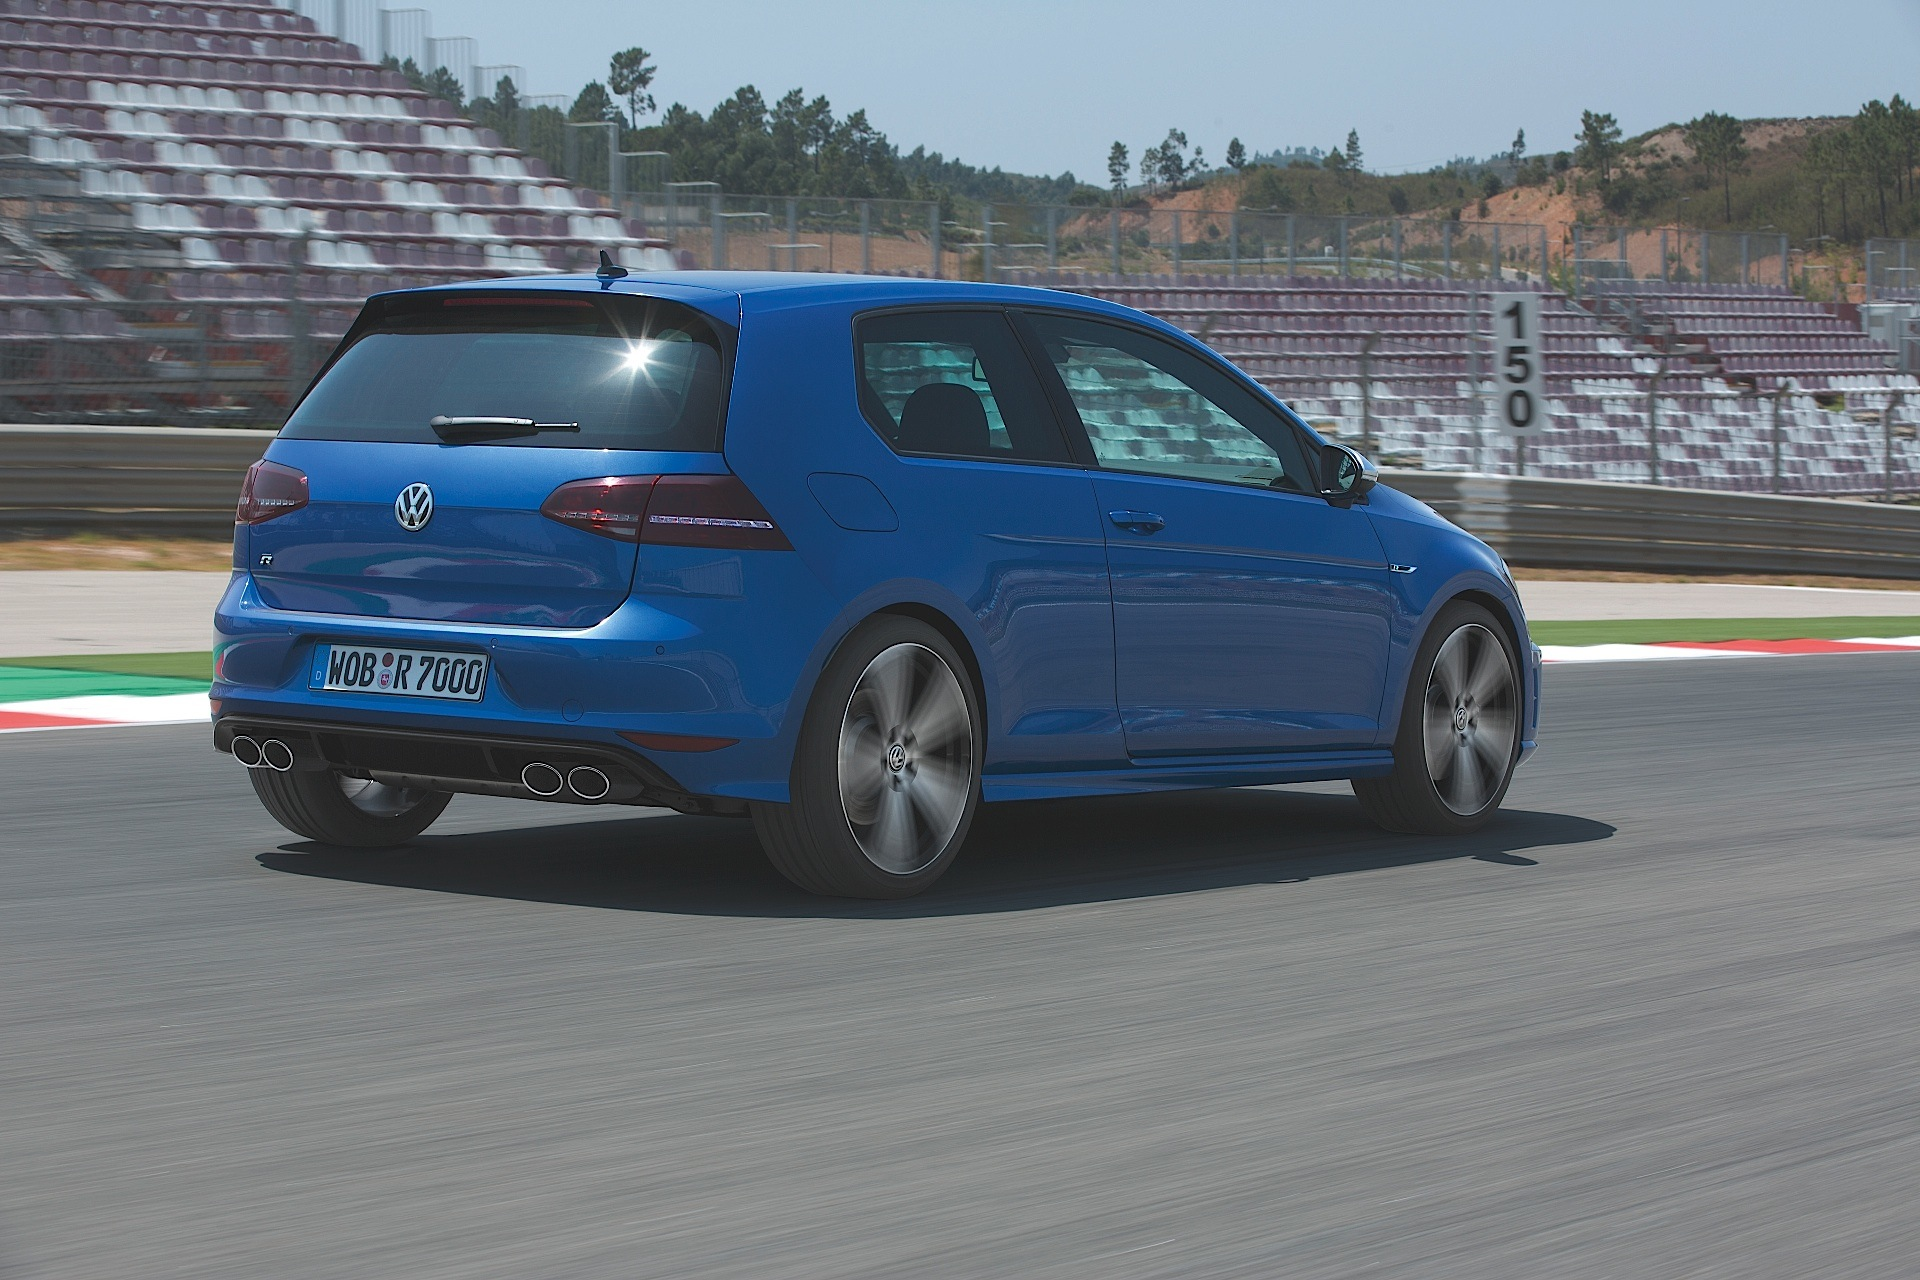 volkswagen golf vii r 3 doors specs photos 2013 2014 2015 2016 2017 autoevolution. Black Bedroom Furniture Sets. Home Design Ideas